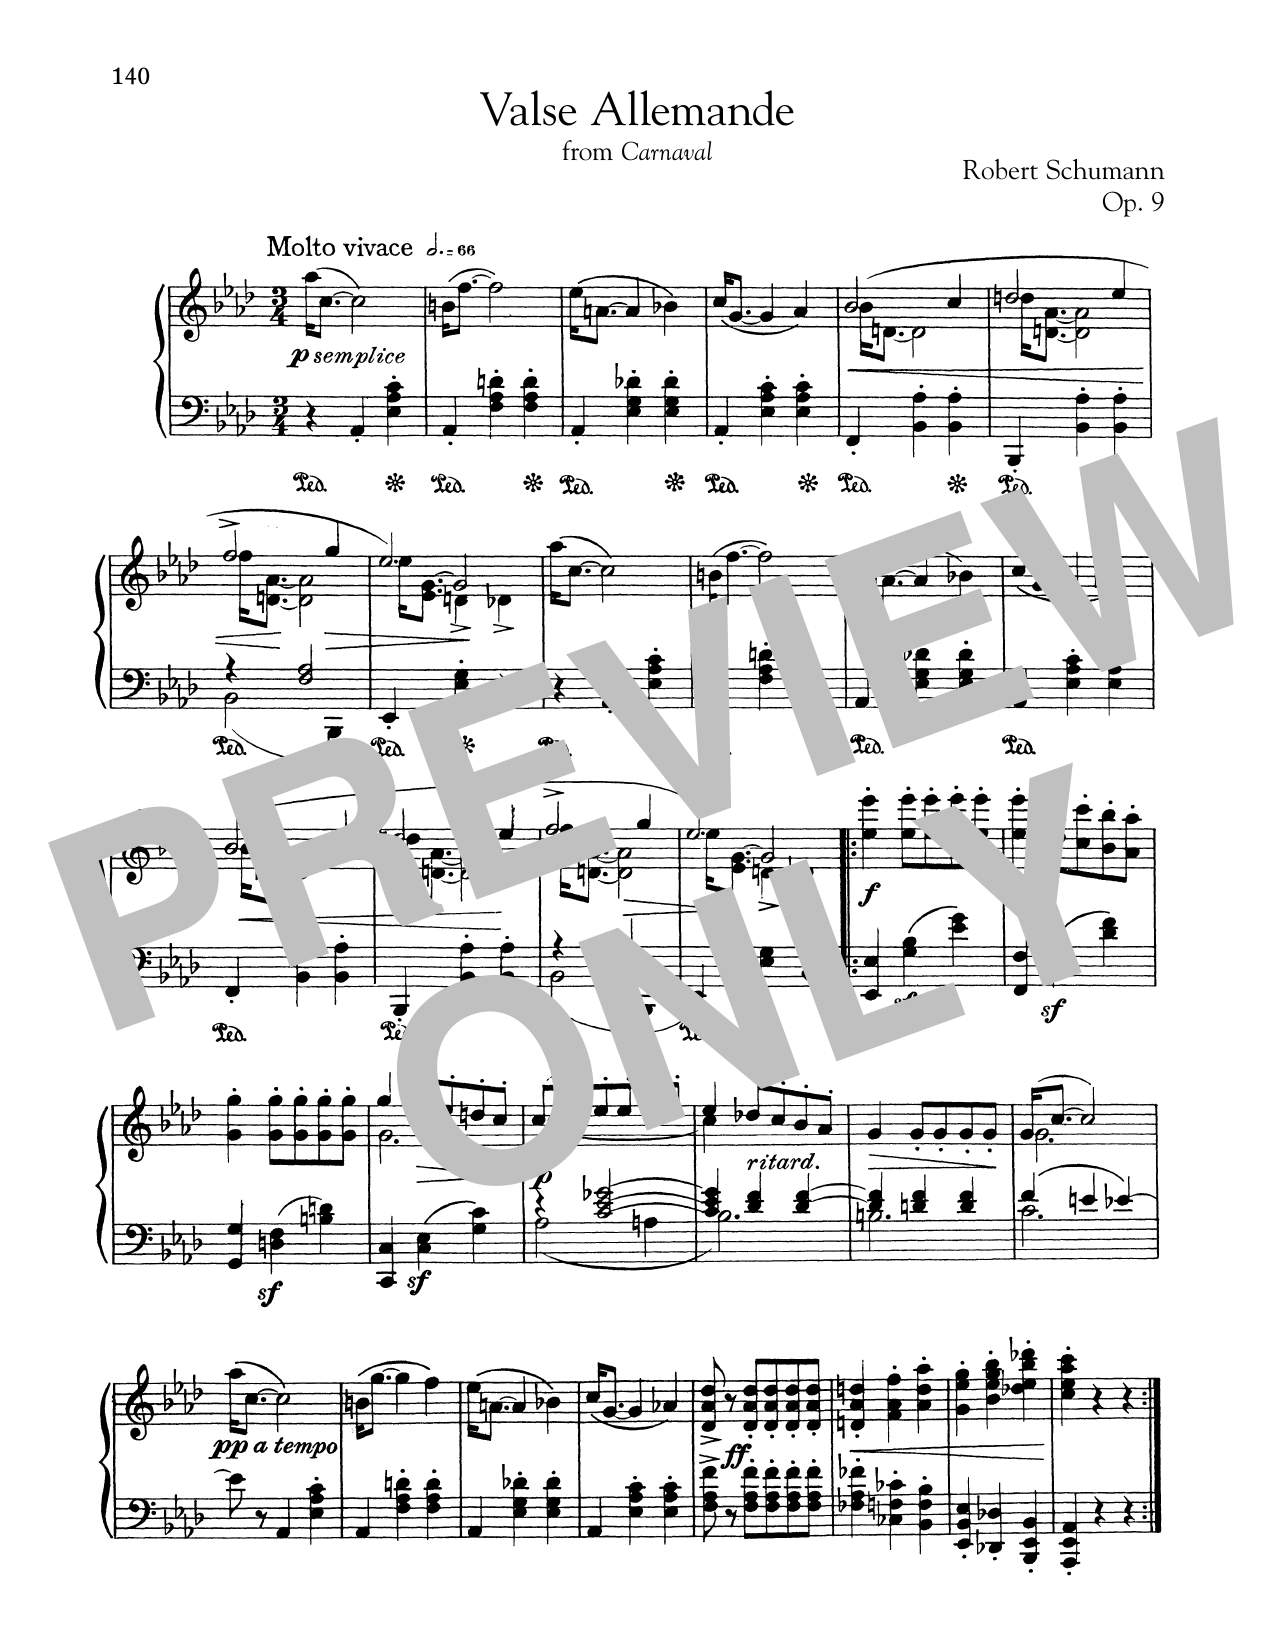 Robert Schumann Valse Allemande sheet music notes and chords. Download Printable PDF.